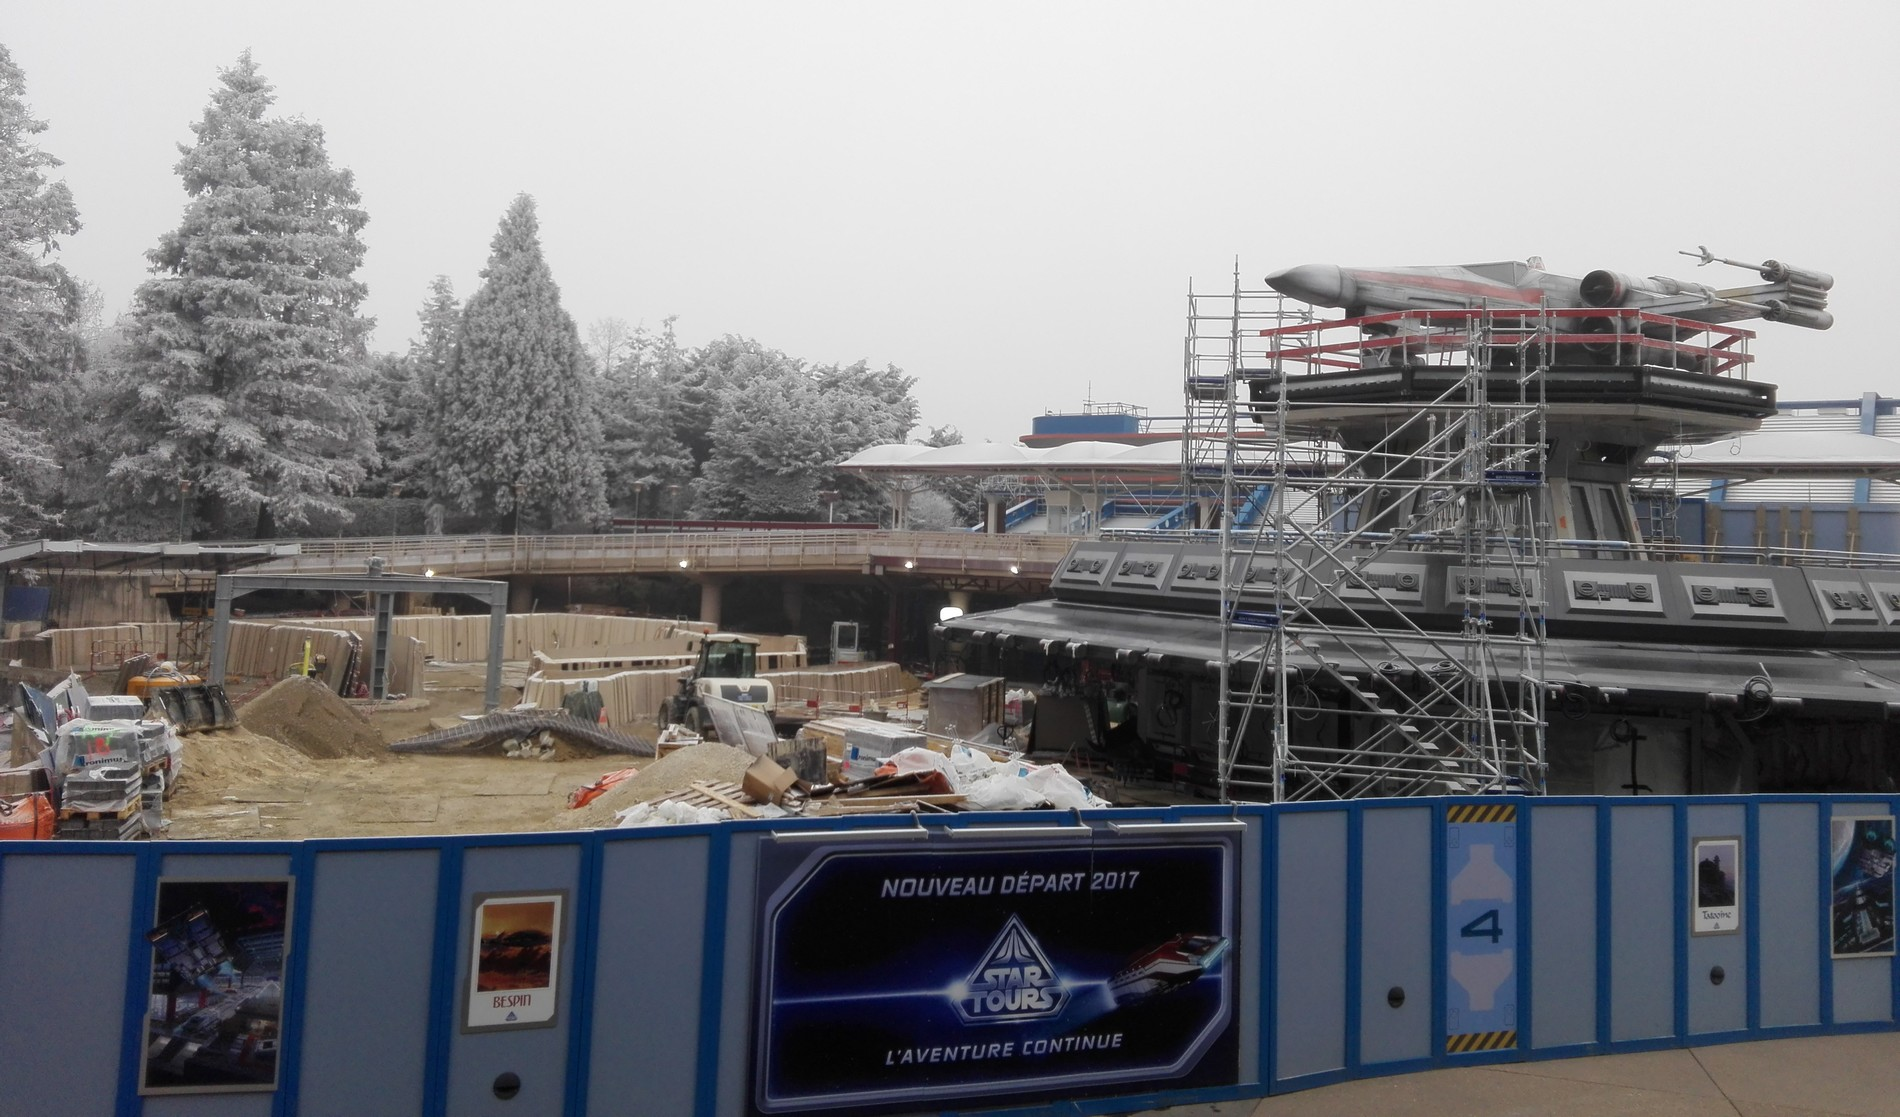 Star Tours - Chantier - Disneyland Paris - Décembre 2016